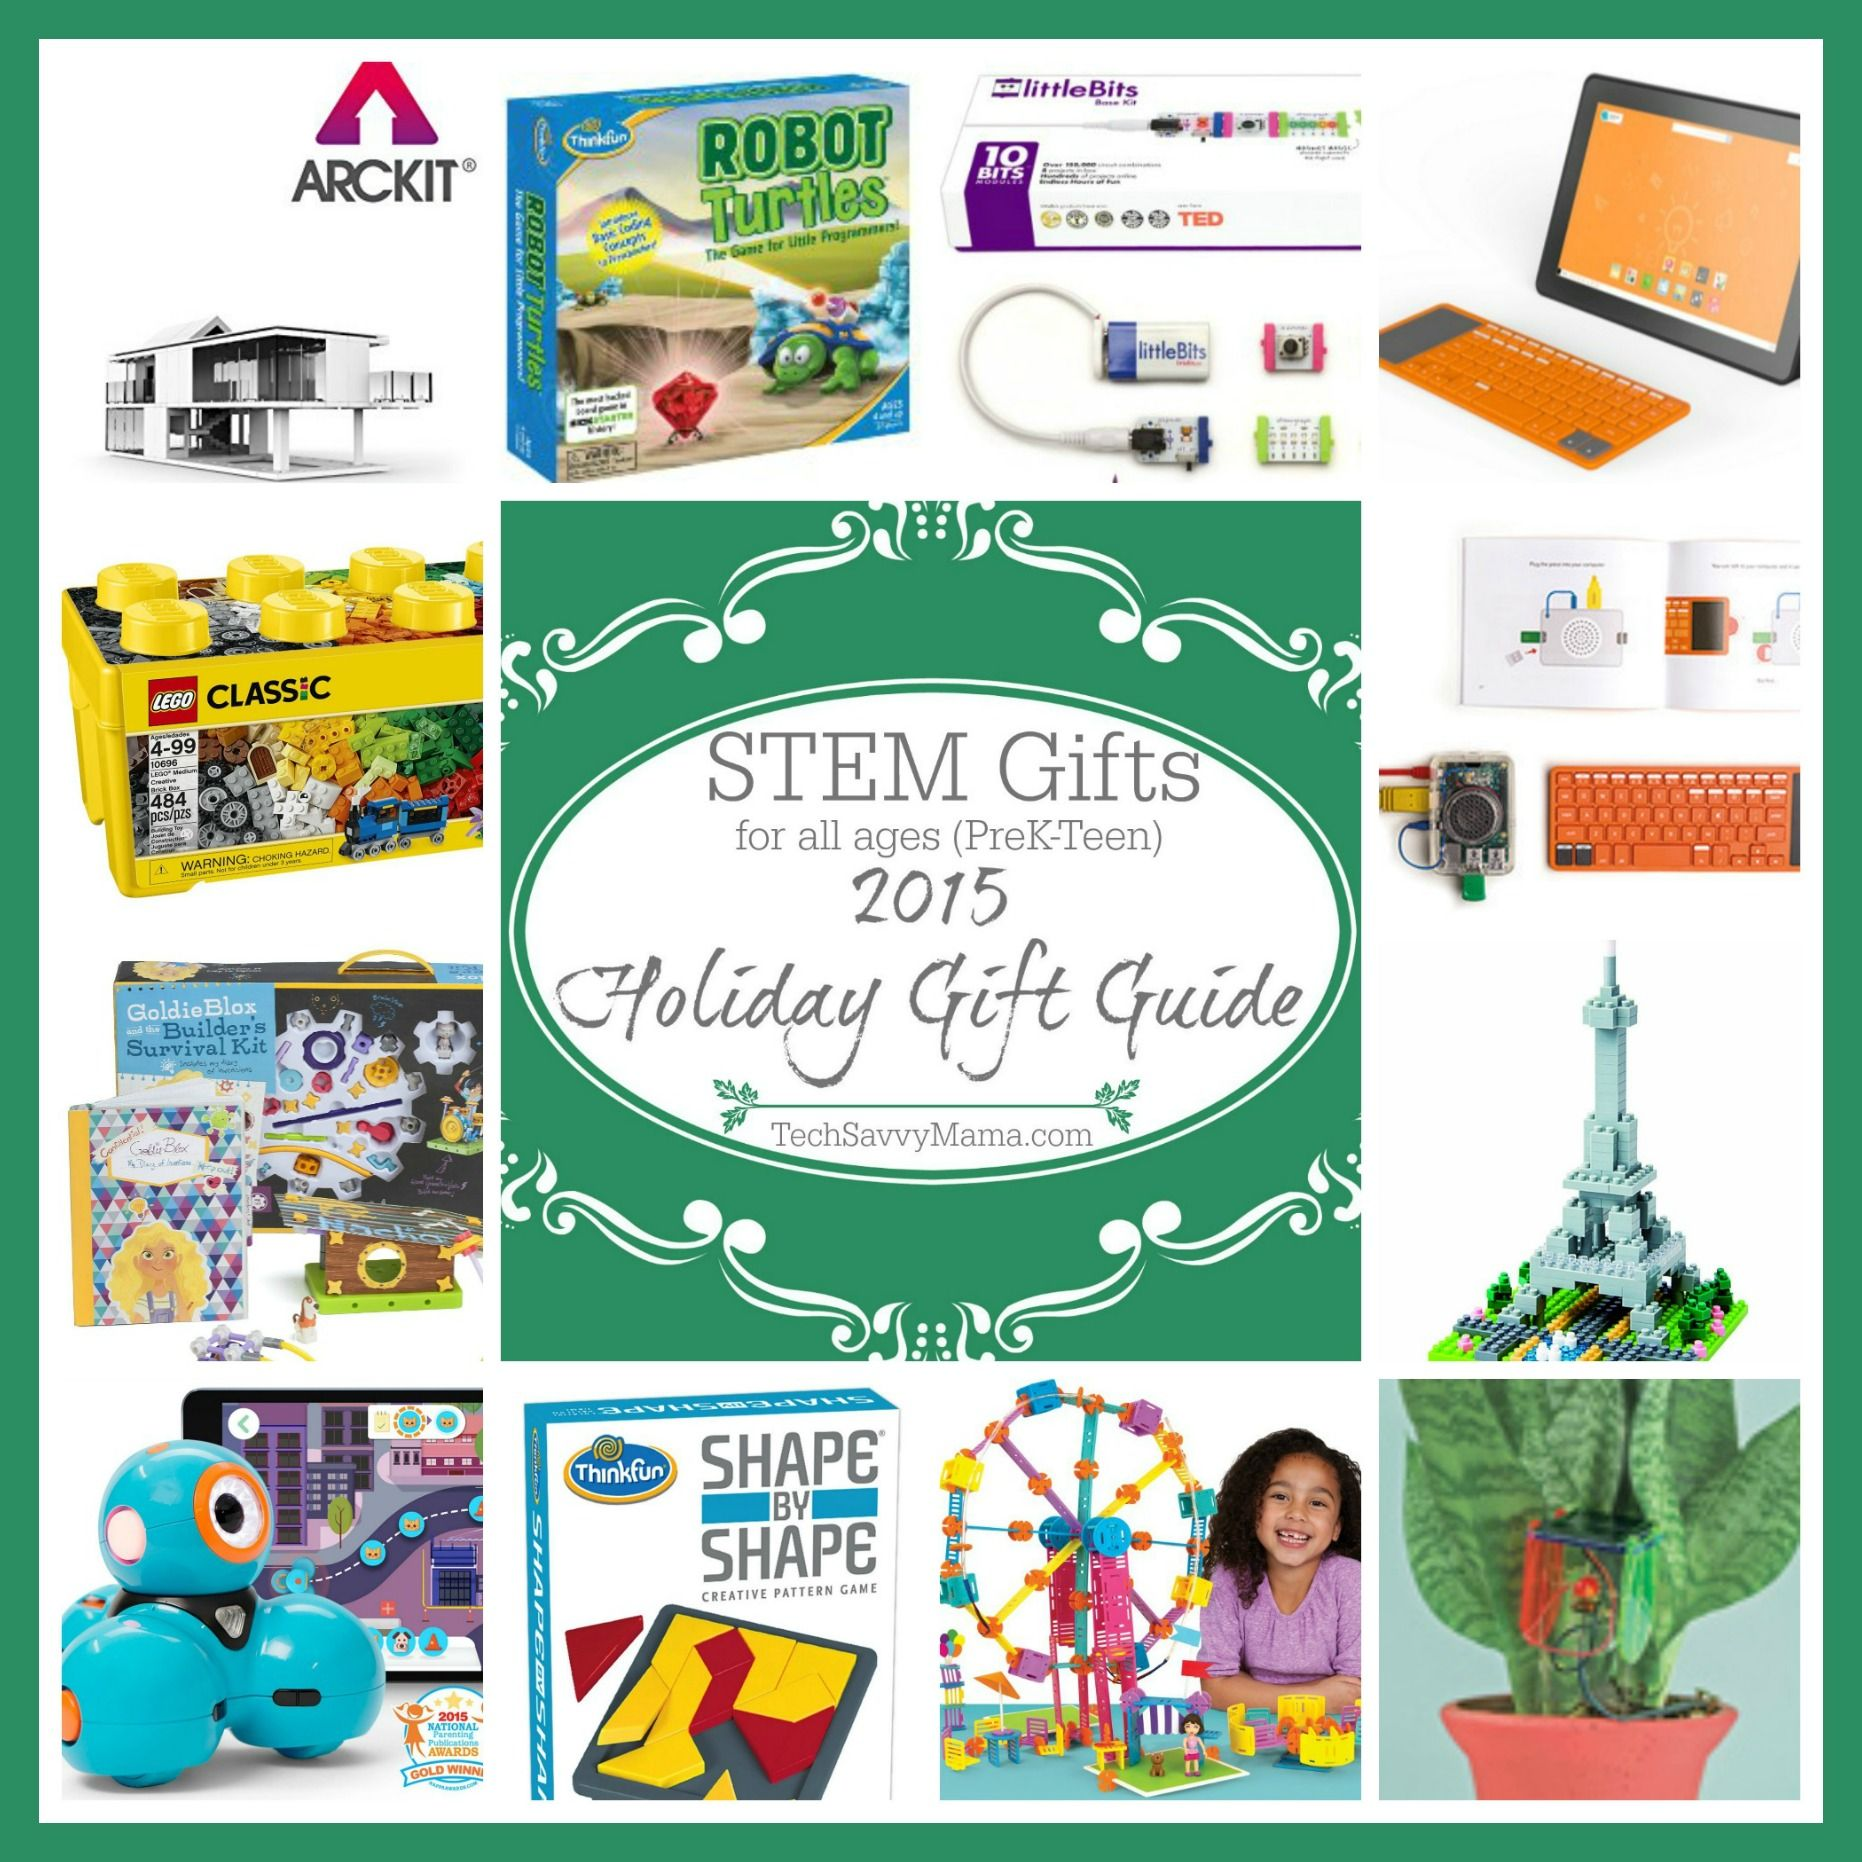 2015 Gift Guide STEM Gifts for All Ages preK teen